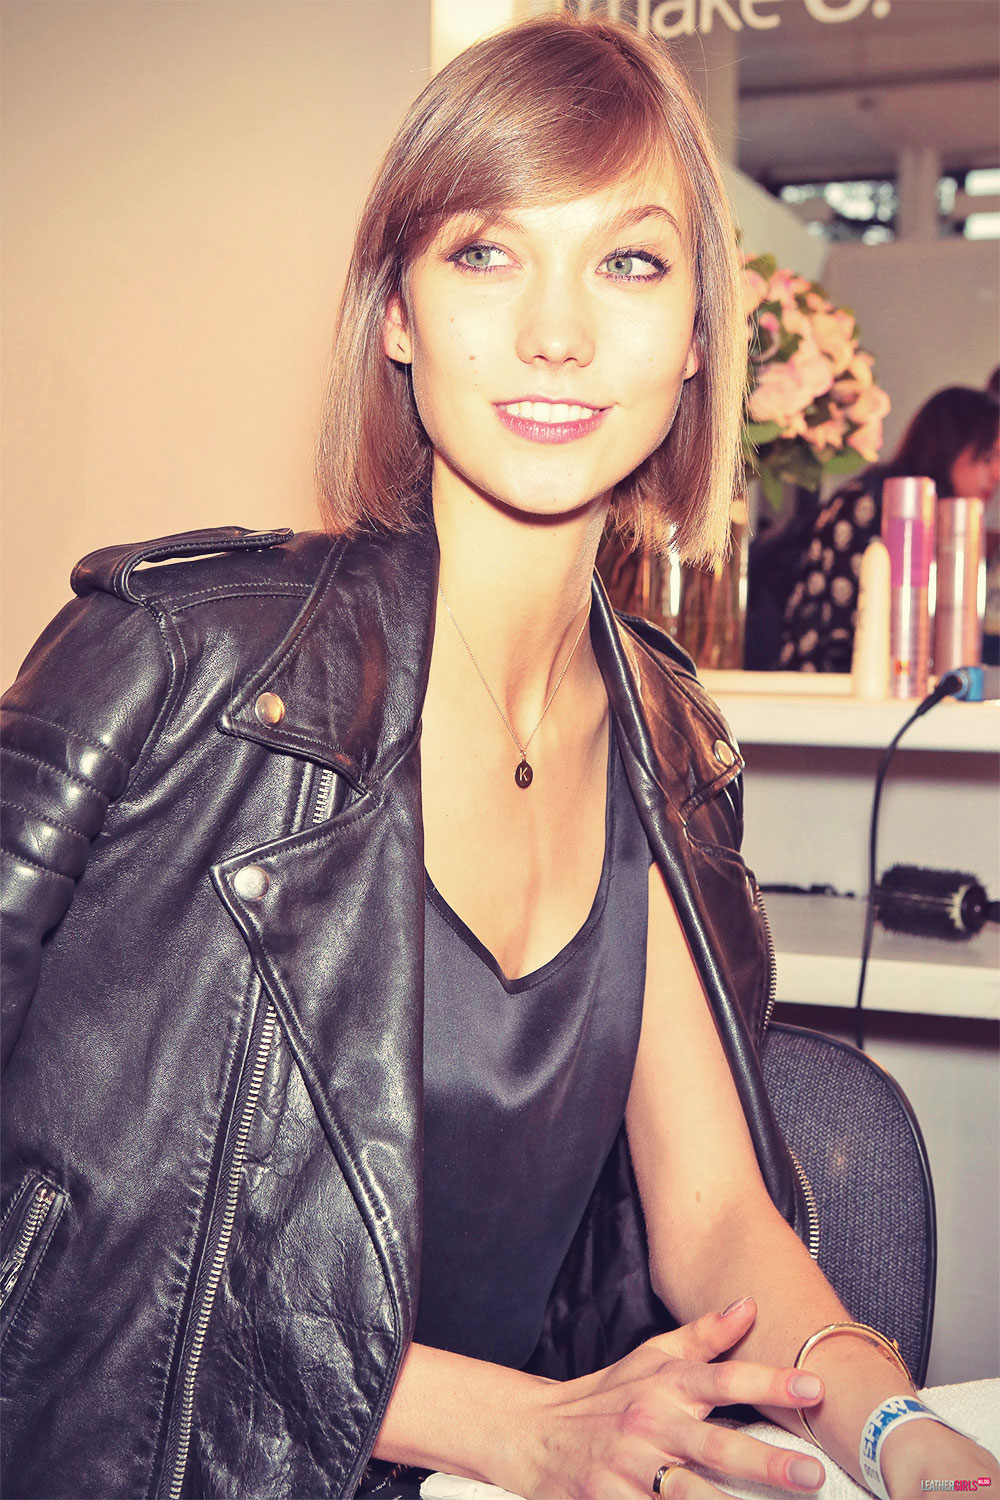 Karlie Kloss backstage at Animale Spring Summer 2014